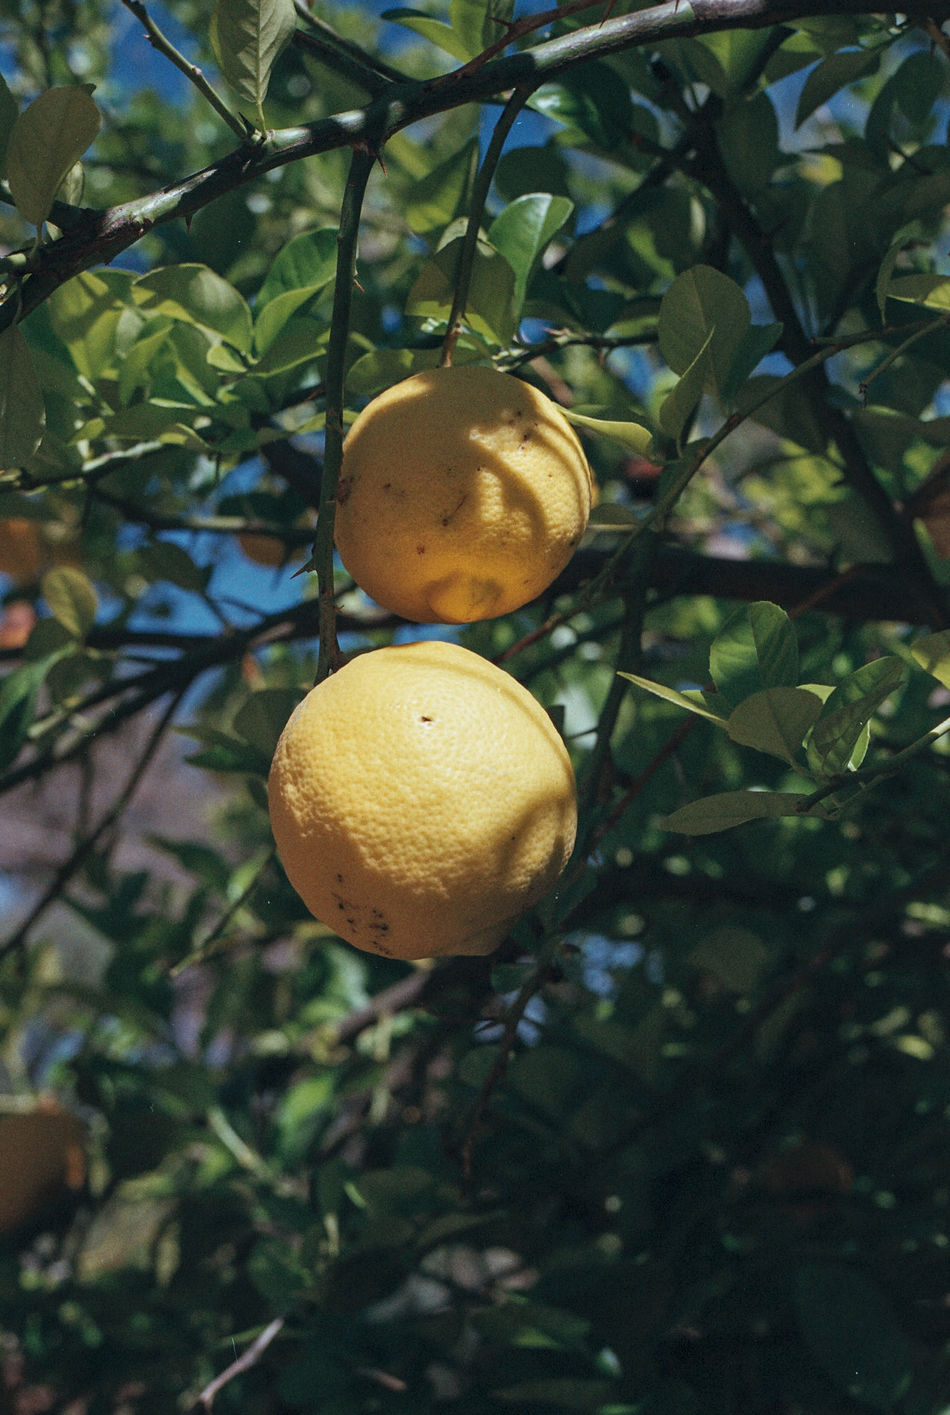 Branch Citrus Fruit Close-up Day Film Food Freshness Fruit Growth Healthy Eating Leaf Lemon Lemon Tree Lemon Trees Lemons Nature Nature Photography Nature_collection No People Oranges Outdoors Scenics Travel Photography Tree Tree Art Is Everywhere